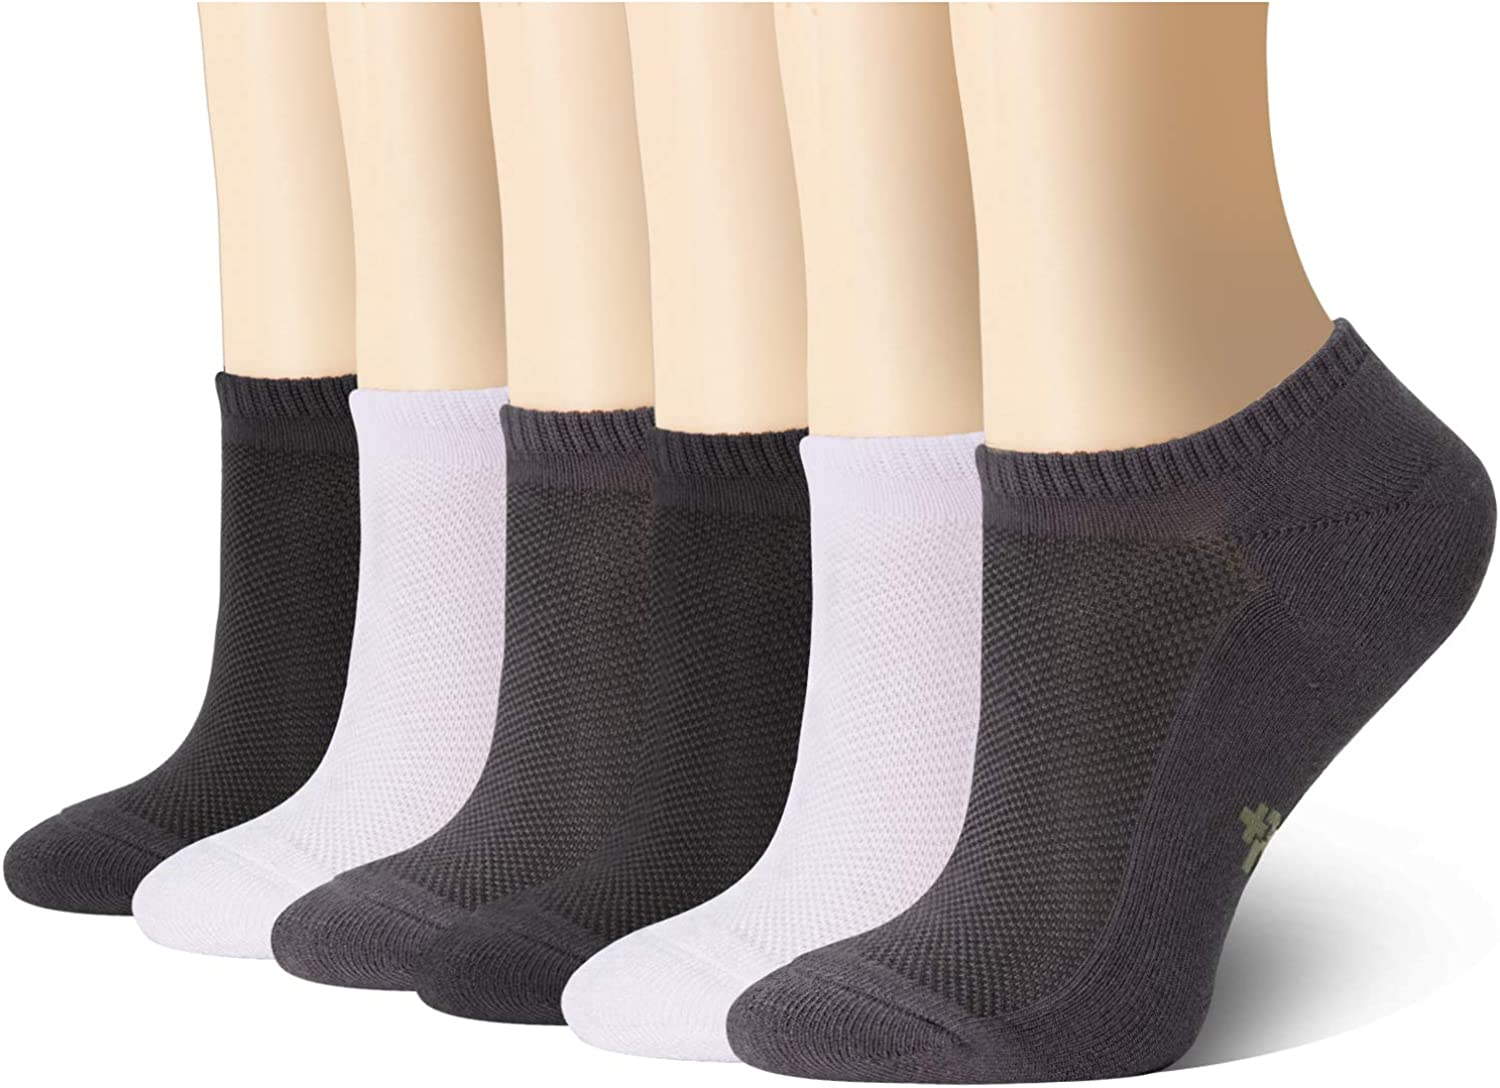 +MD Ultra Soft Athletic Bamboo Socks for Women and Men with Cushioned Sole No Show Casual Socks